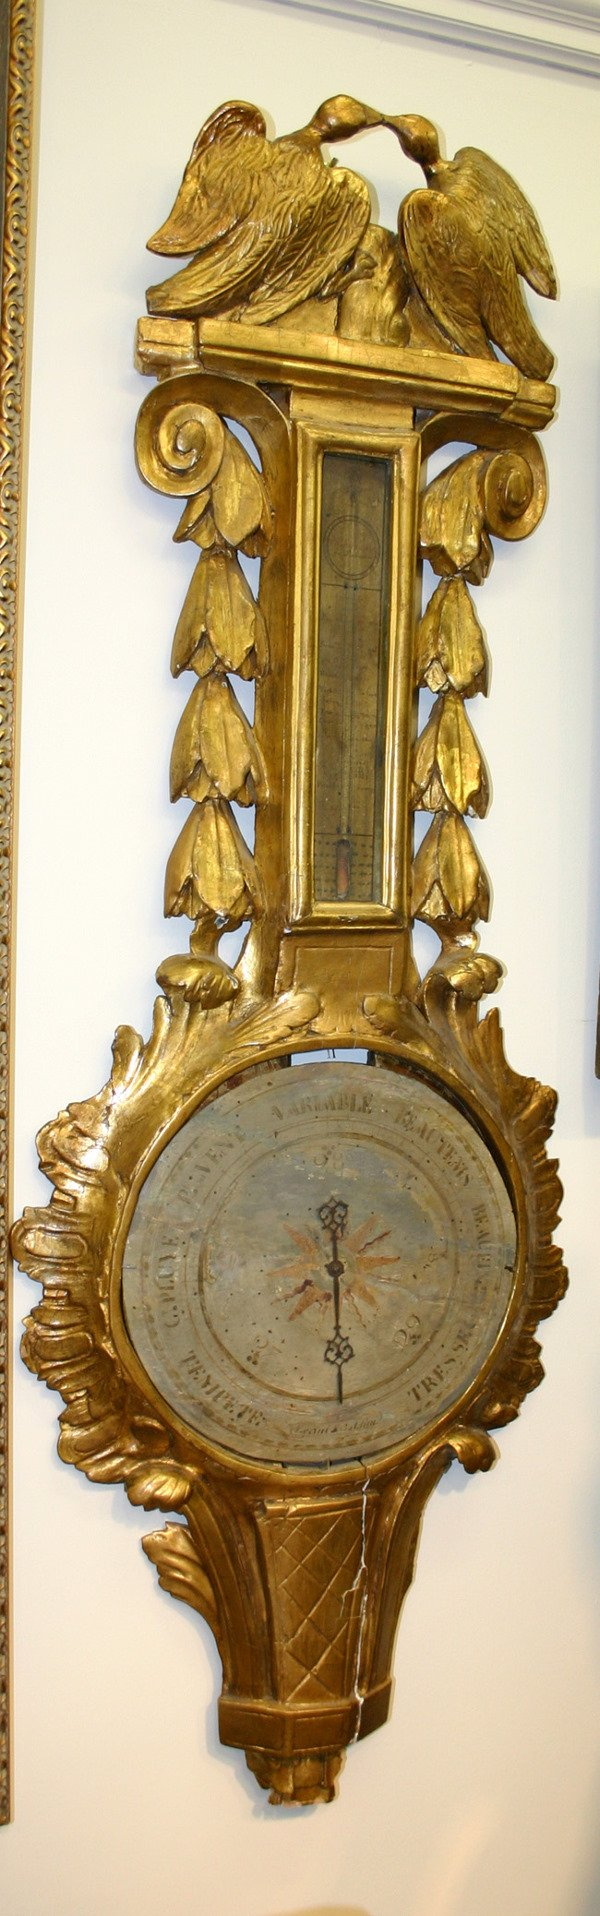 9: EARLY 18TH C. FRENCH BAROMETER